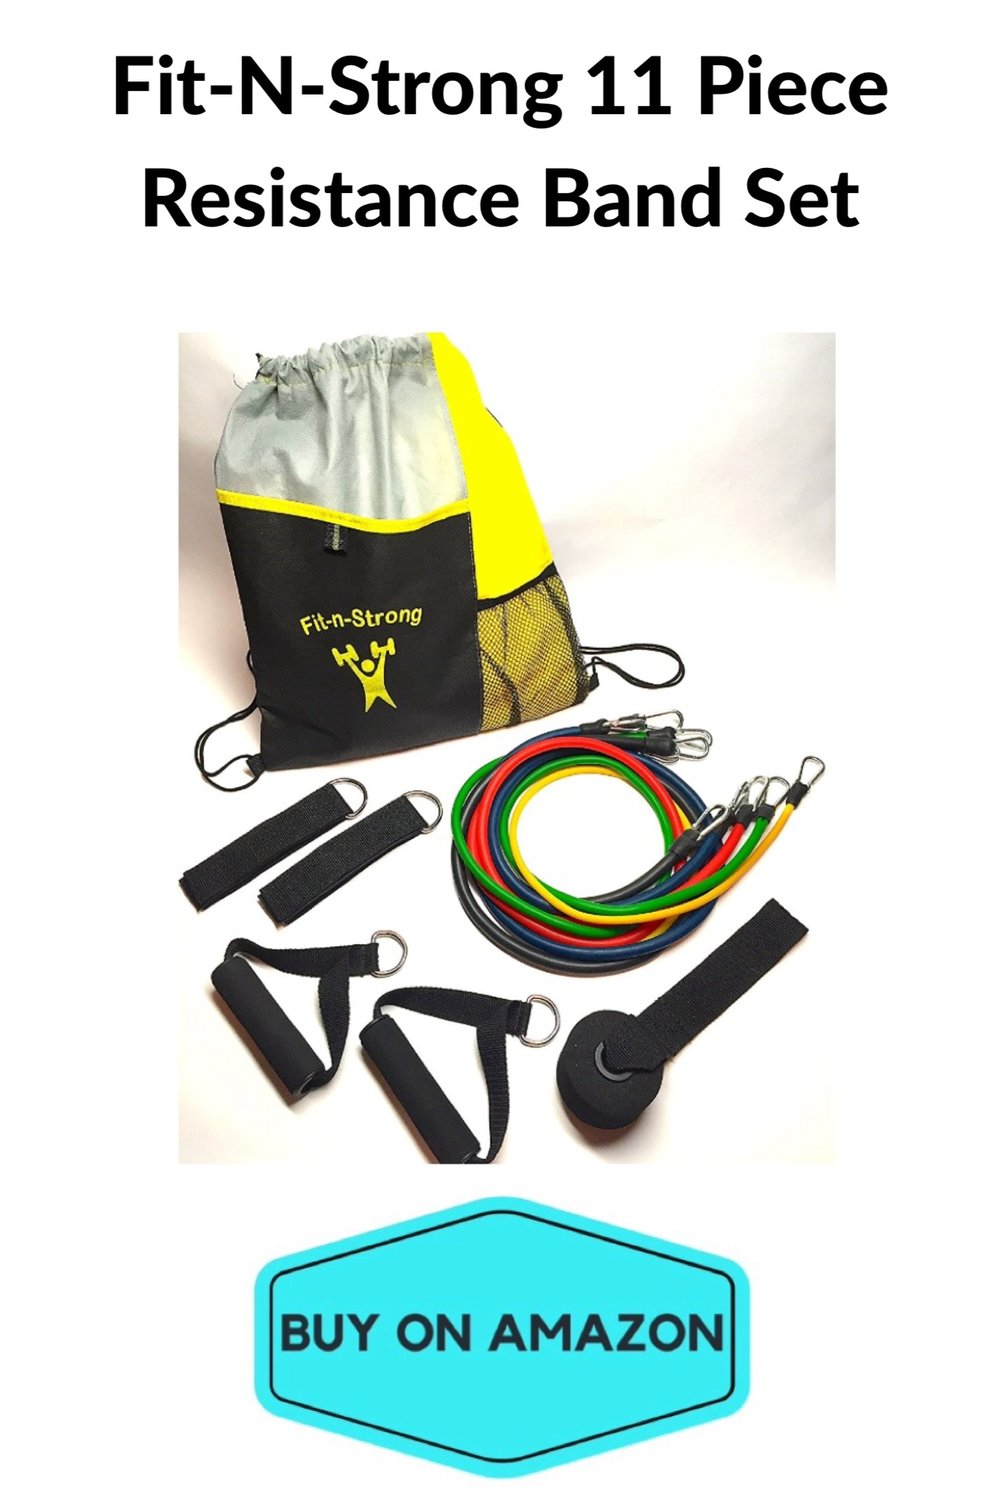 Fit-N-Strong Resistance Band Set